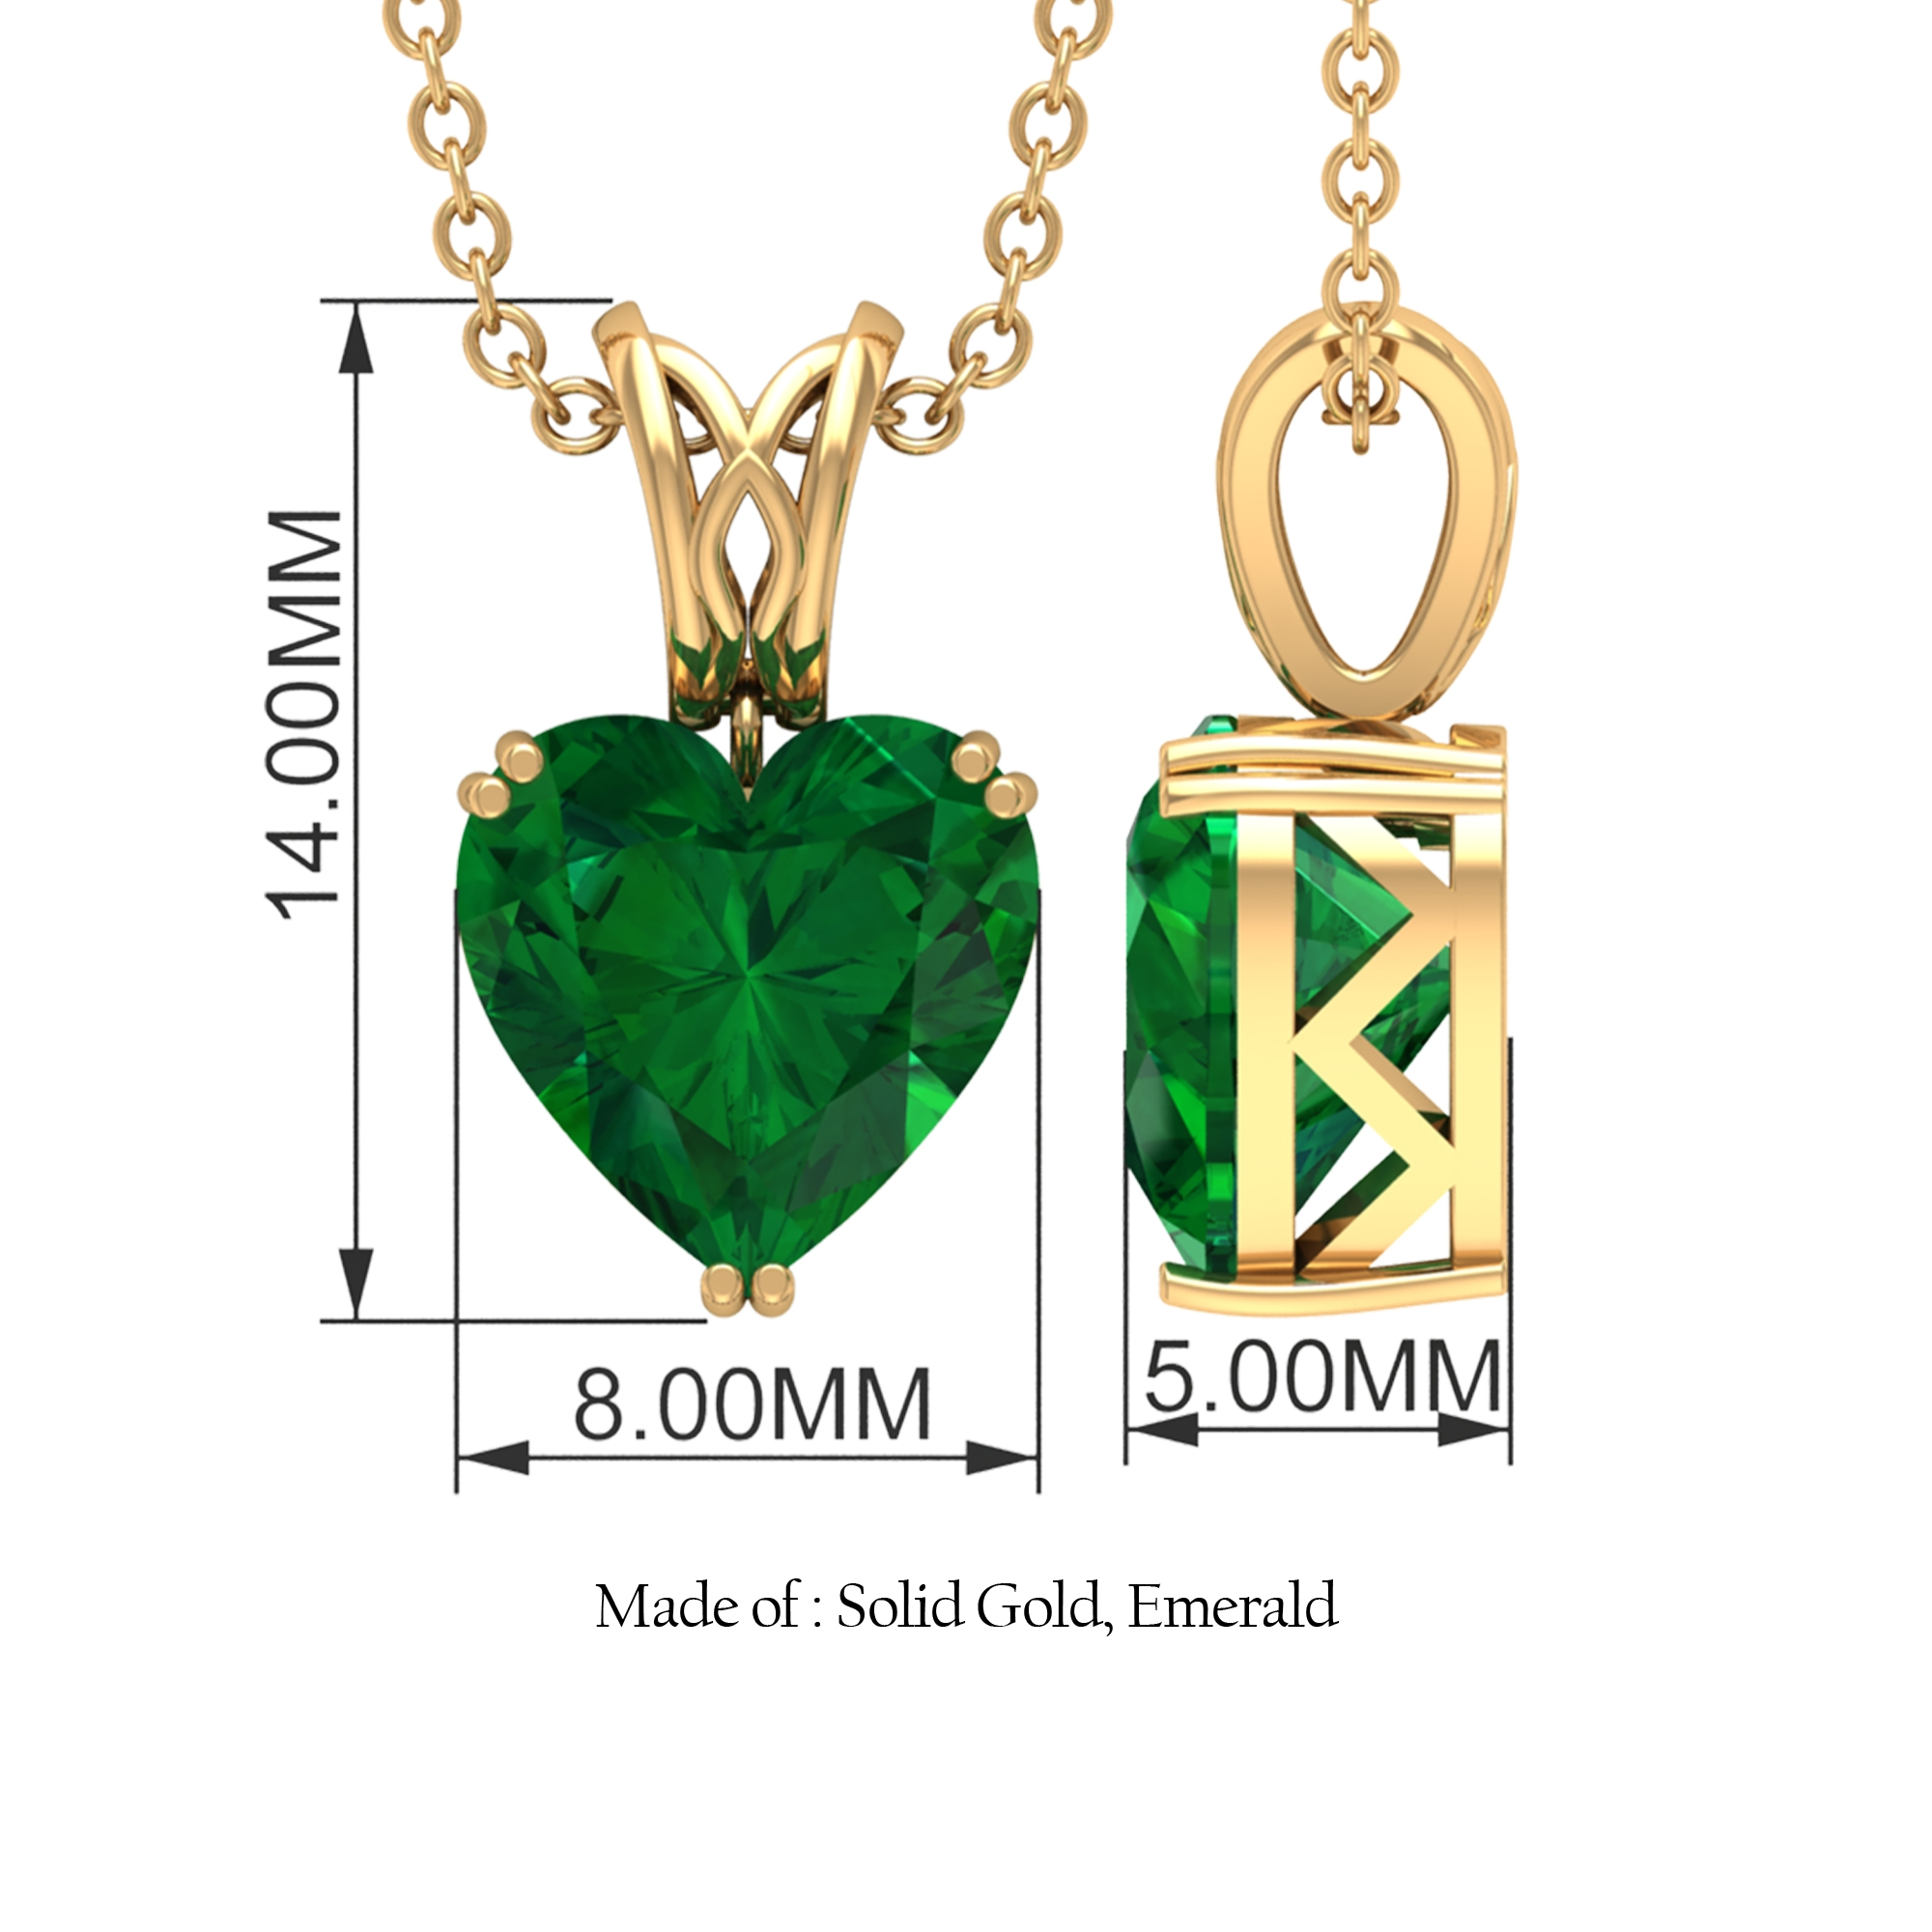 8 MM Heart Cut Emerald Solitaire Pendant in Double Prong Setting with Decorative Bail